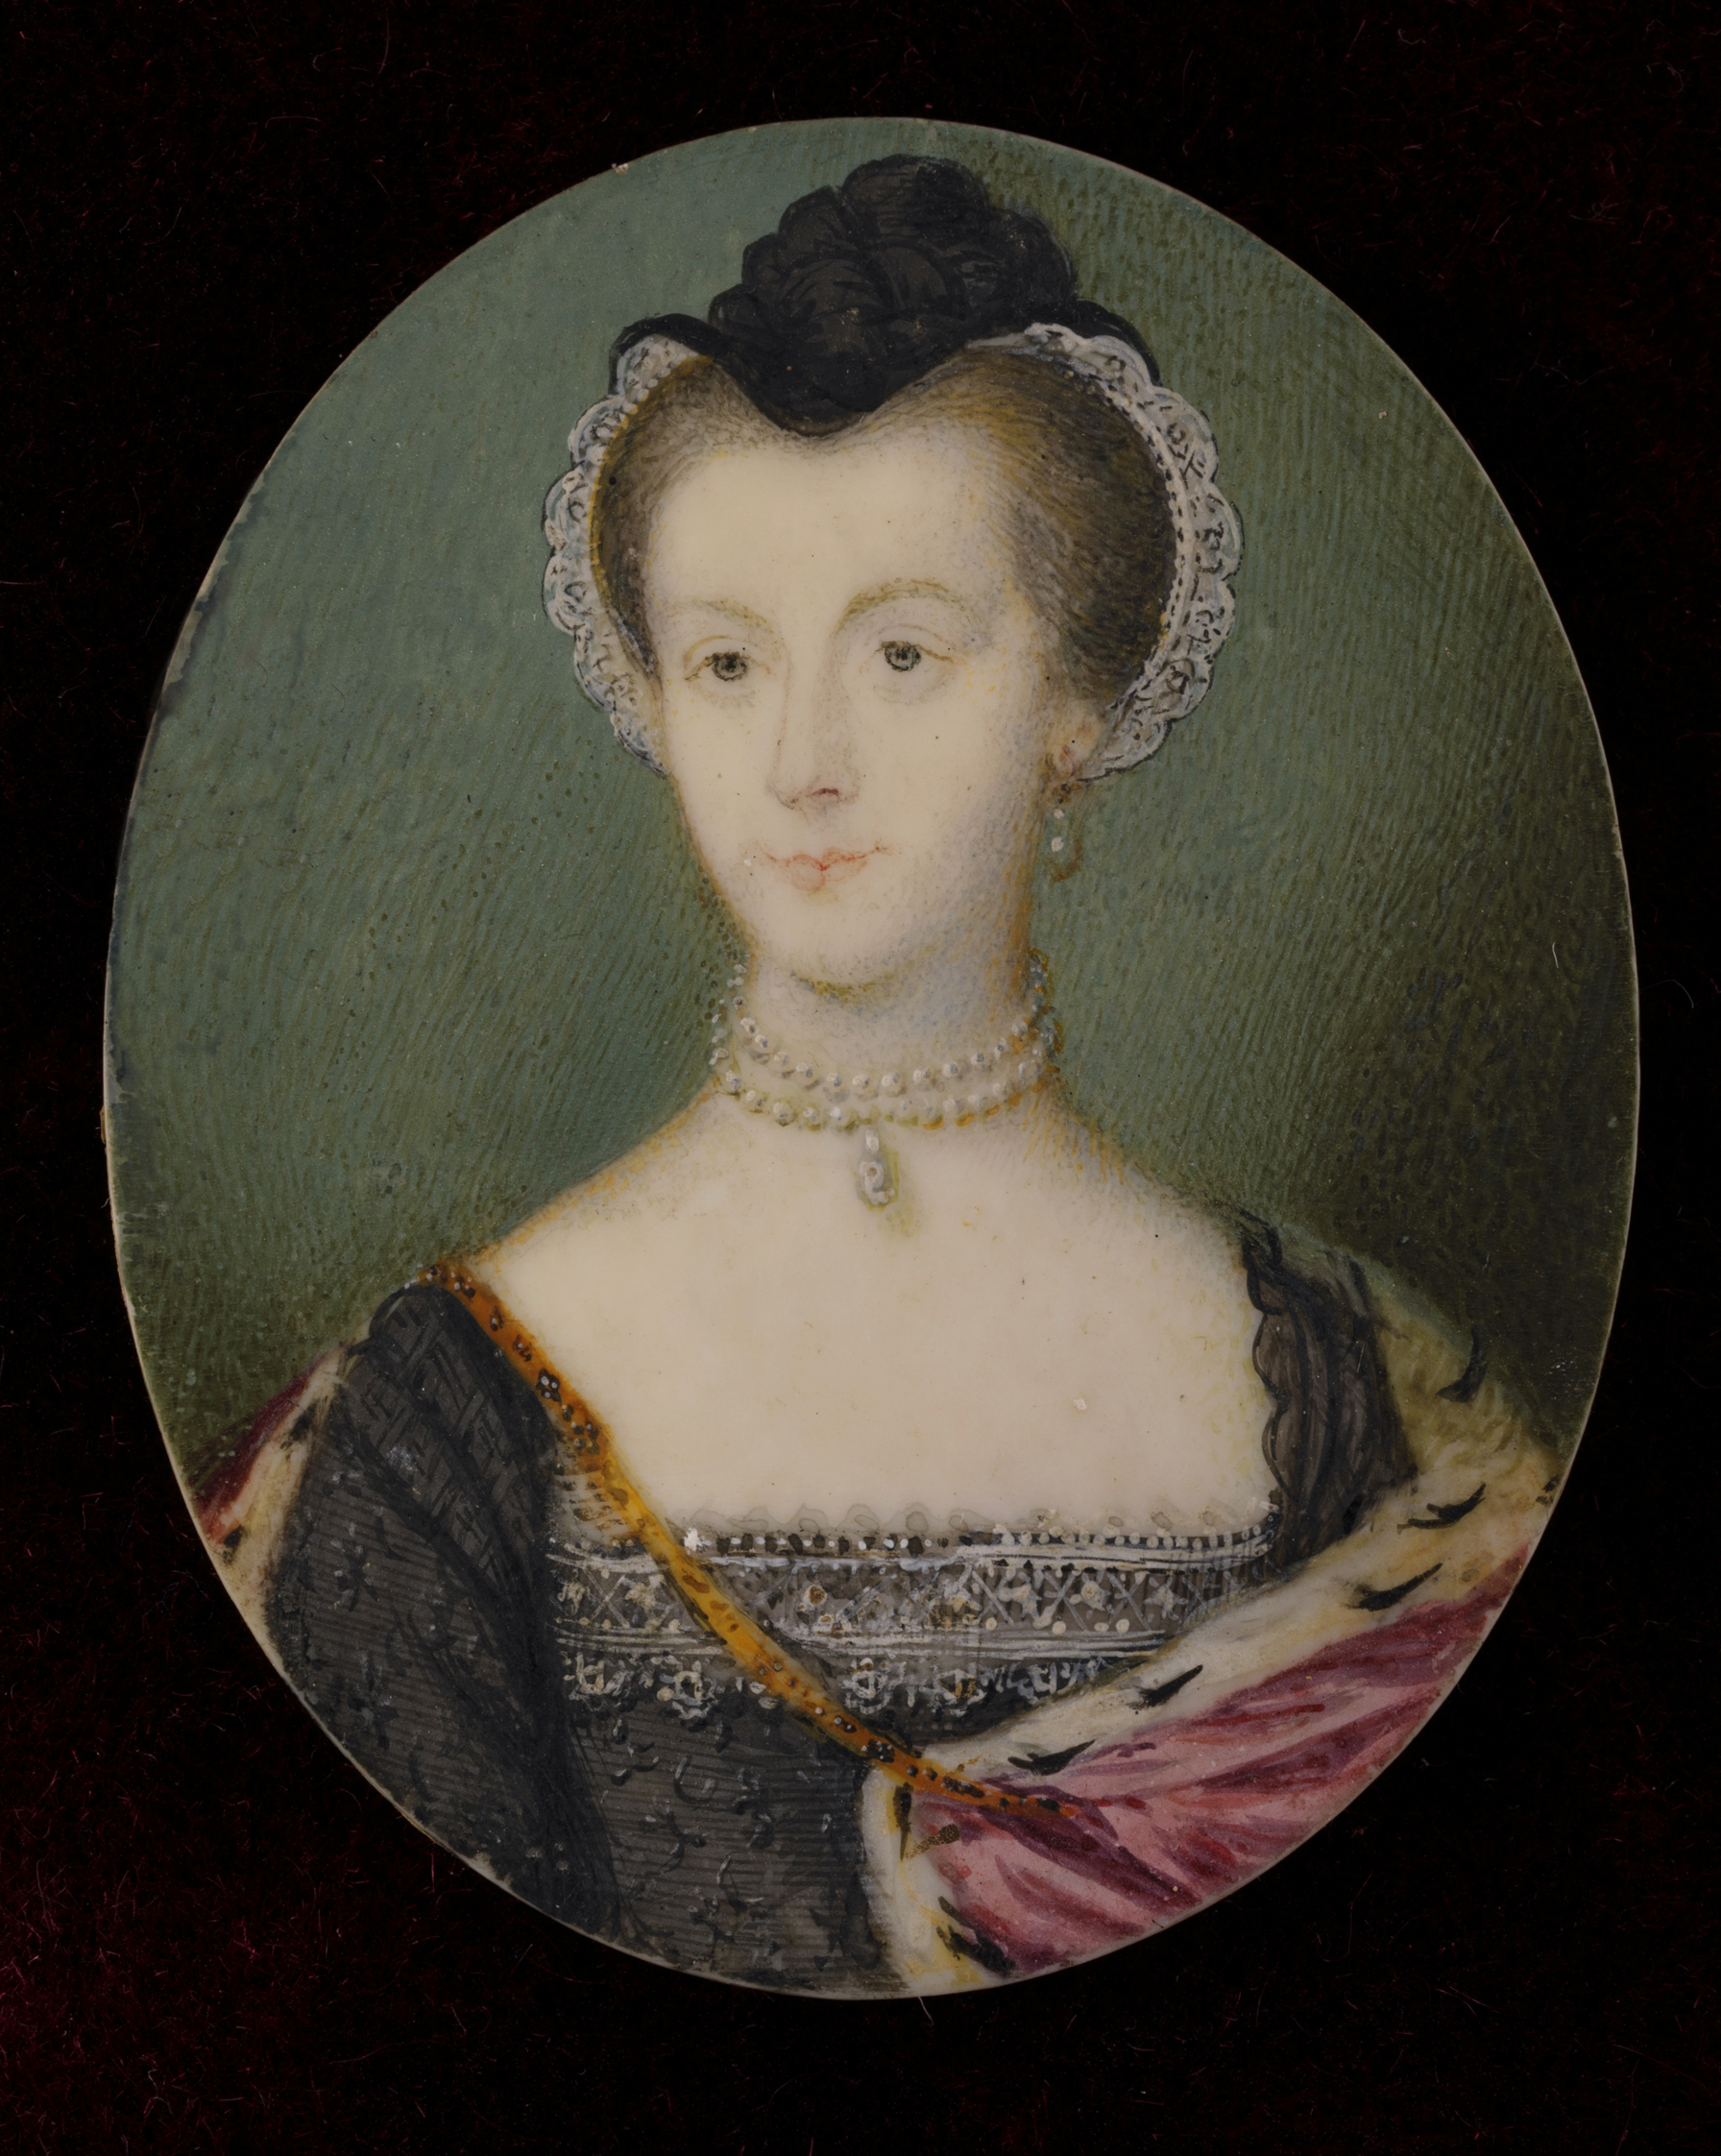 Lady Betty Cobbe, née Beresford (1736–1806) dressed as Mary Queen of Scots, Irish School, 18 th century, Cobbe Collection